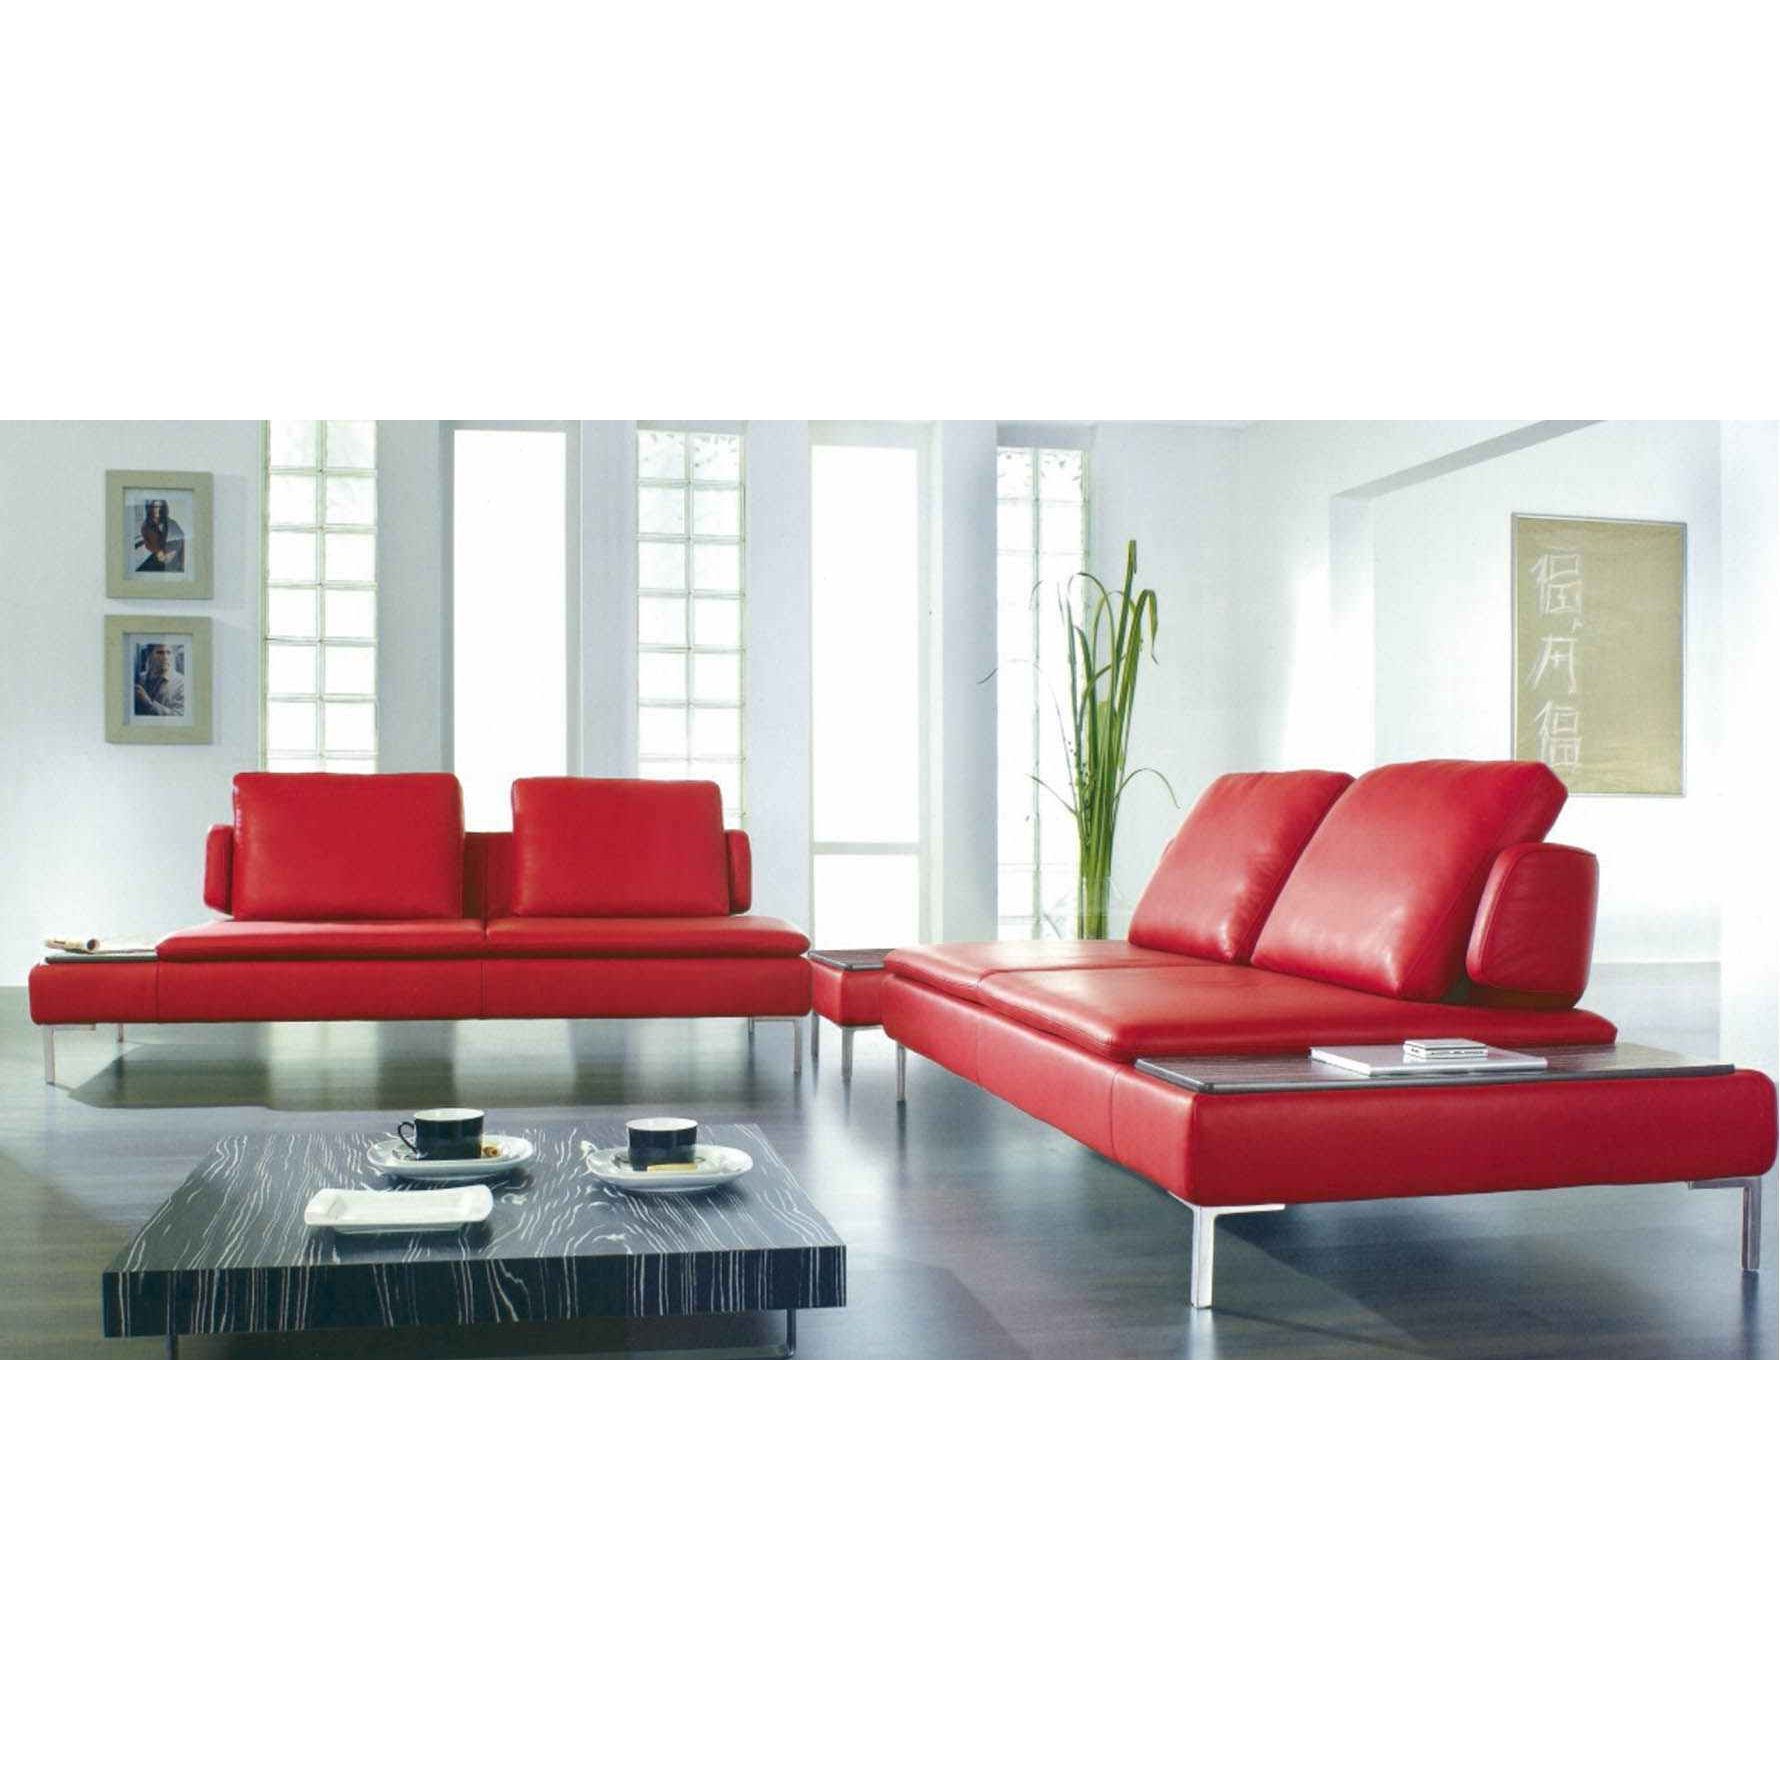 Deco in paris canape d angle design cuir rouge carlton can anglegauche carl - Canape d angle cuir rouge ...